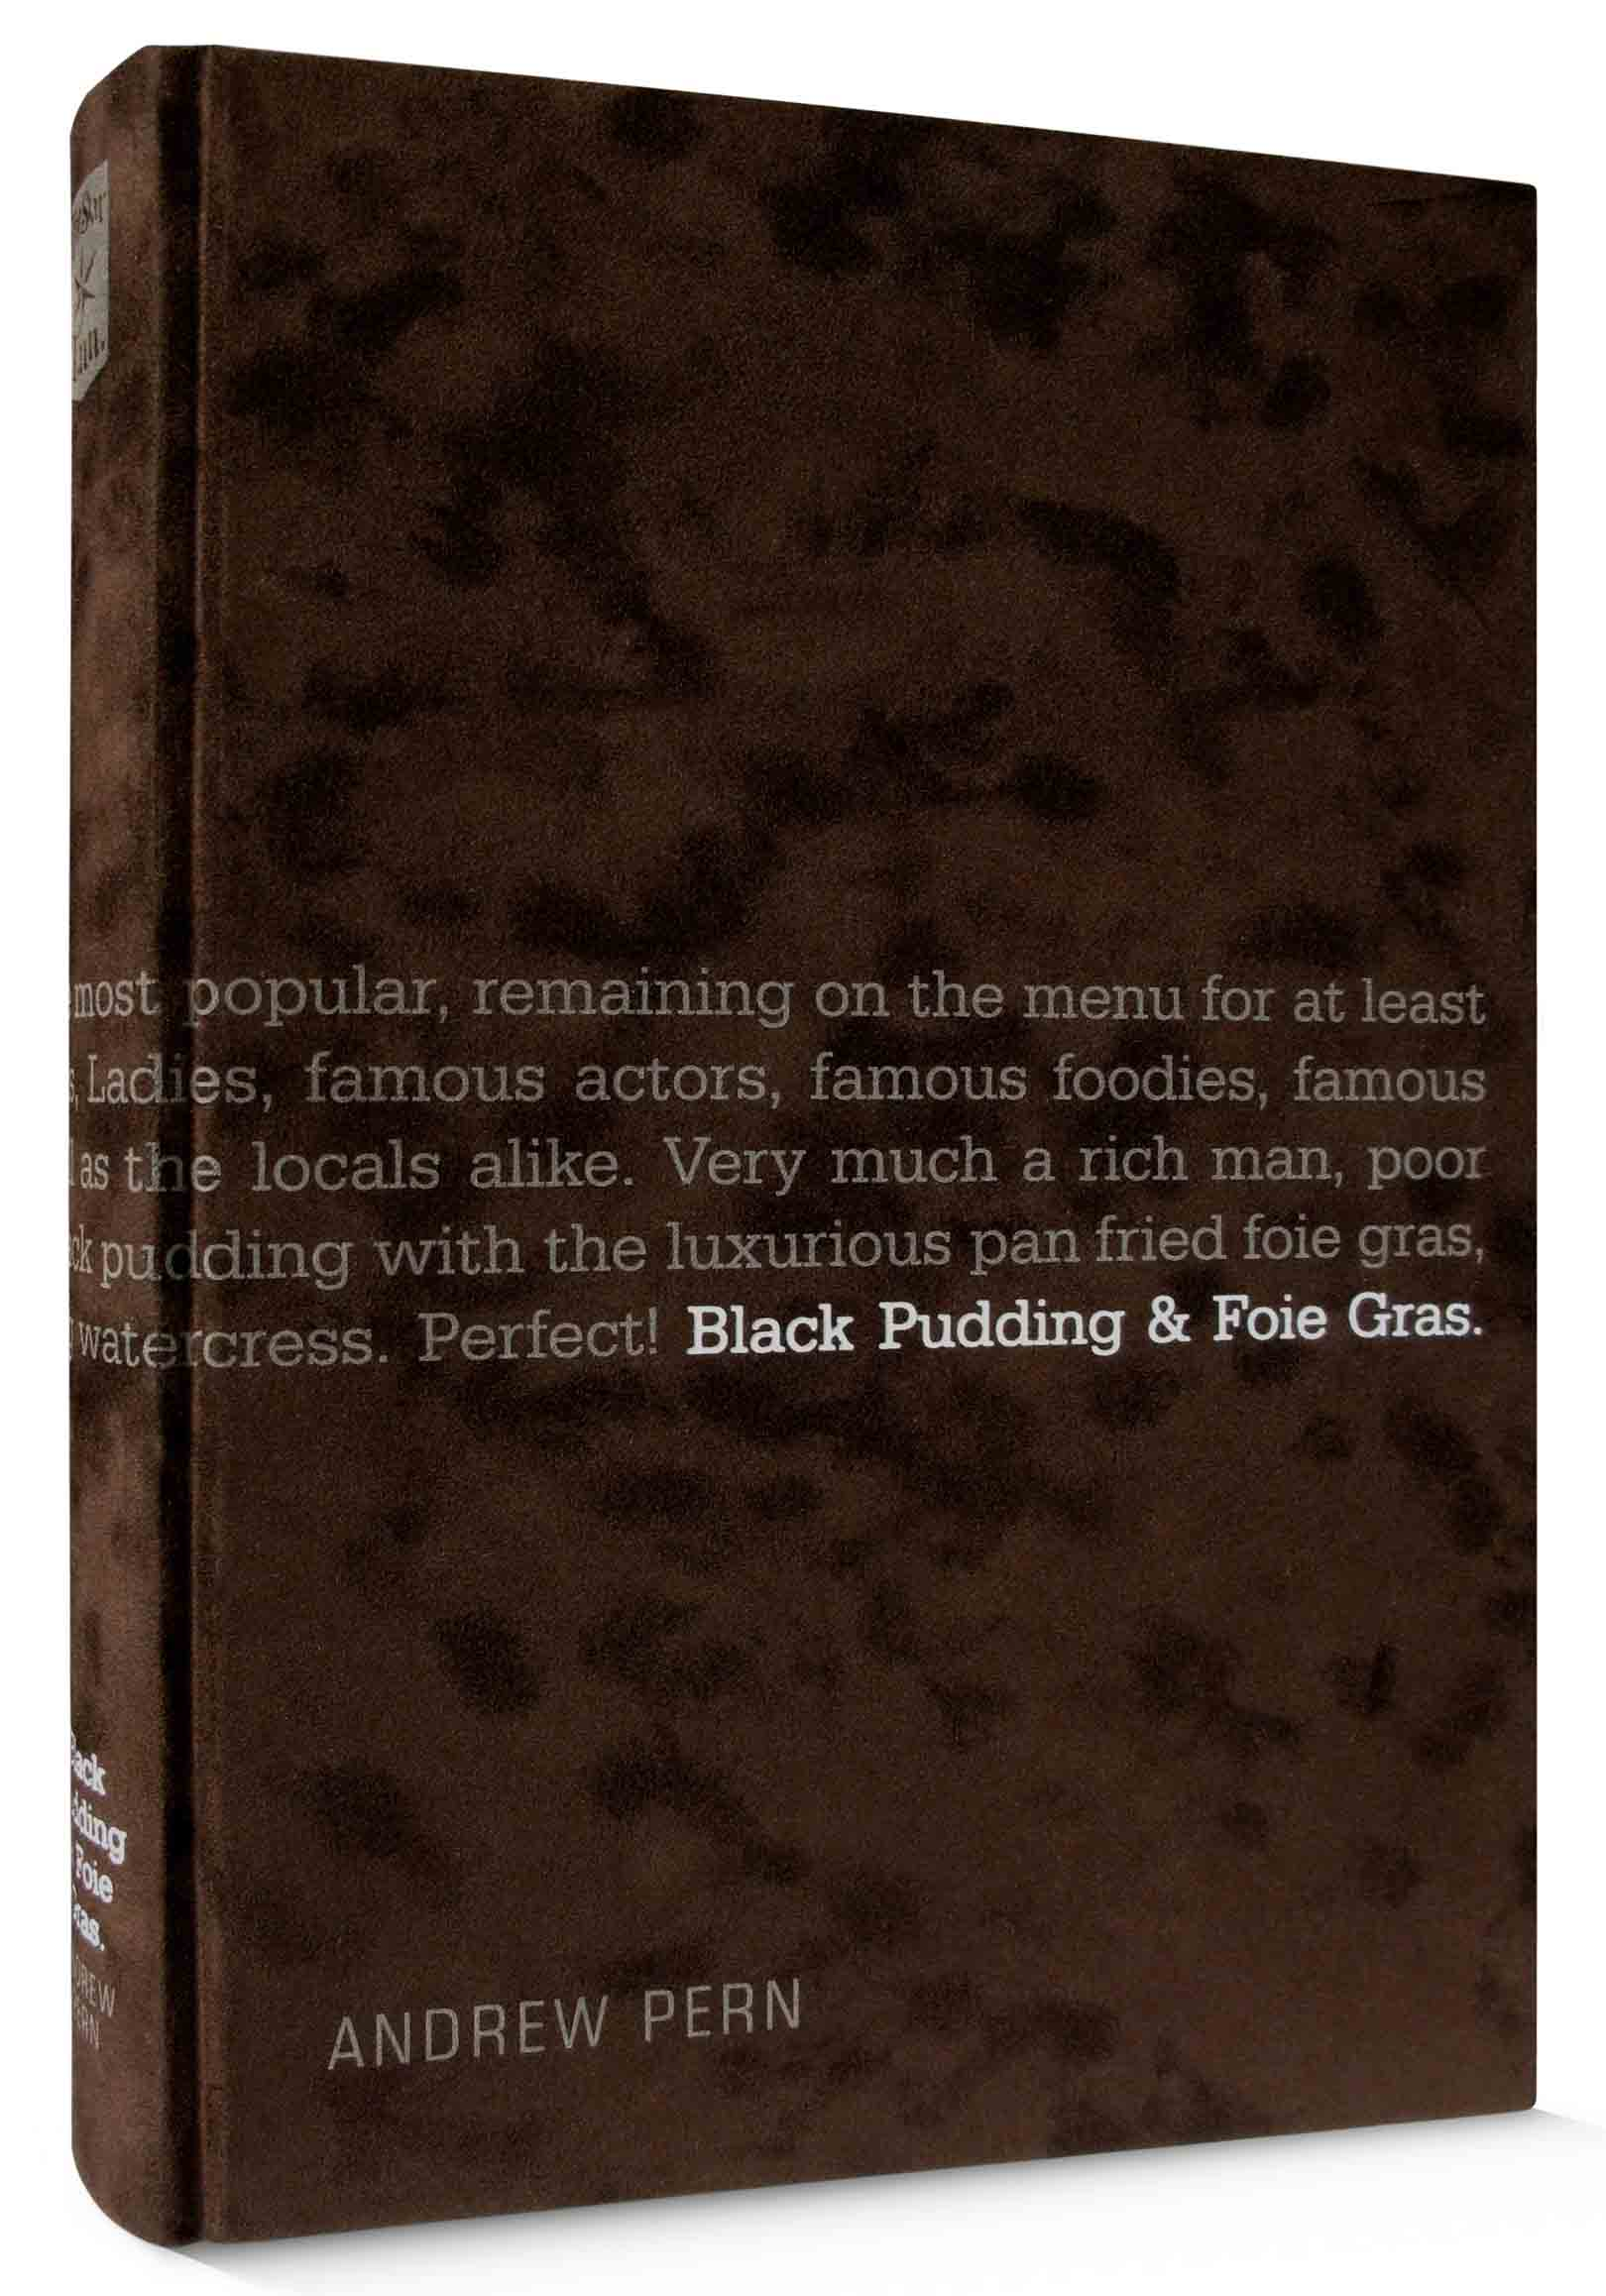 Black Pudding and Foie Gras by Andrew Pern – review